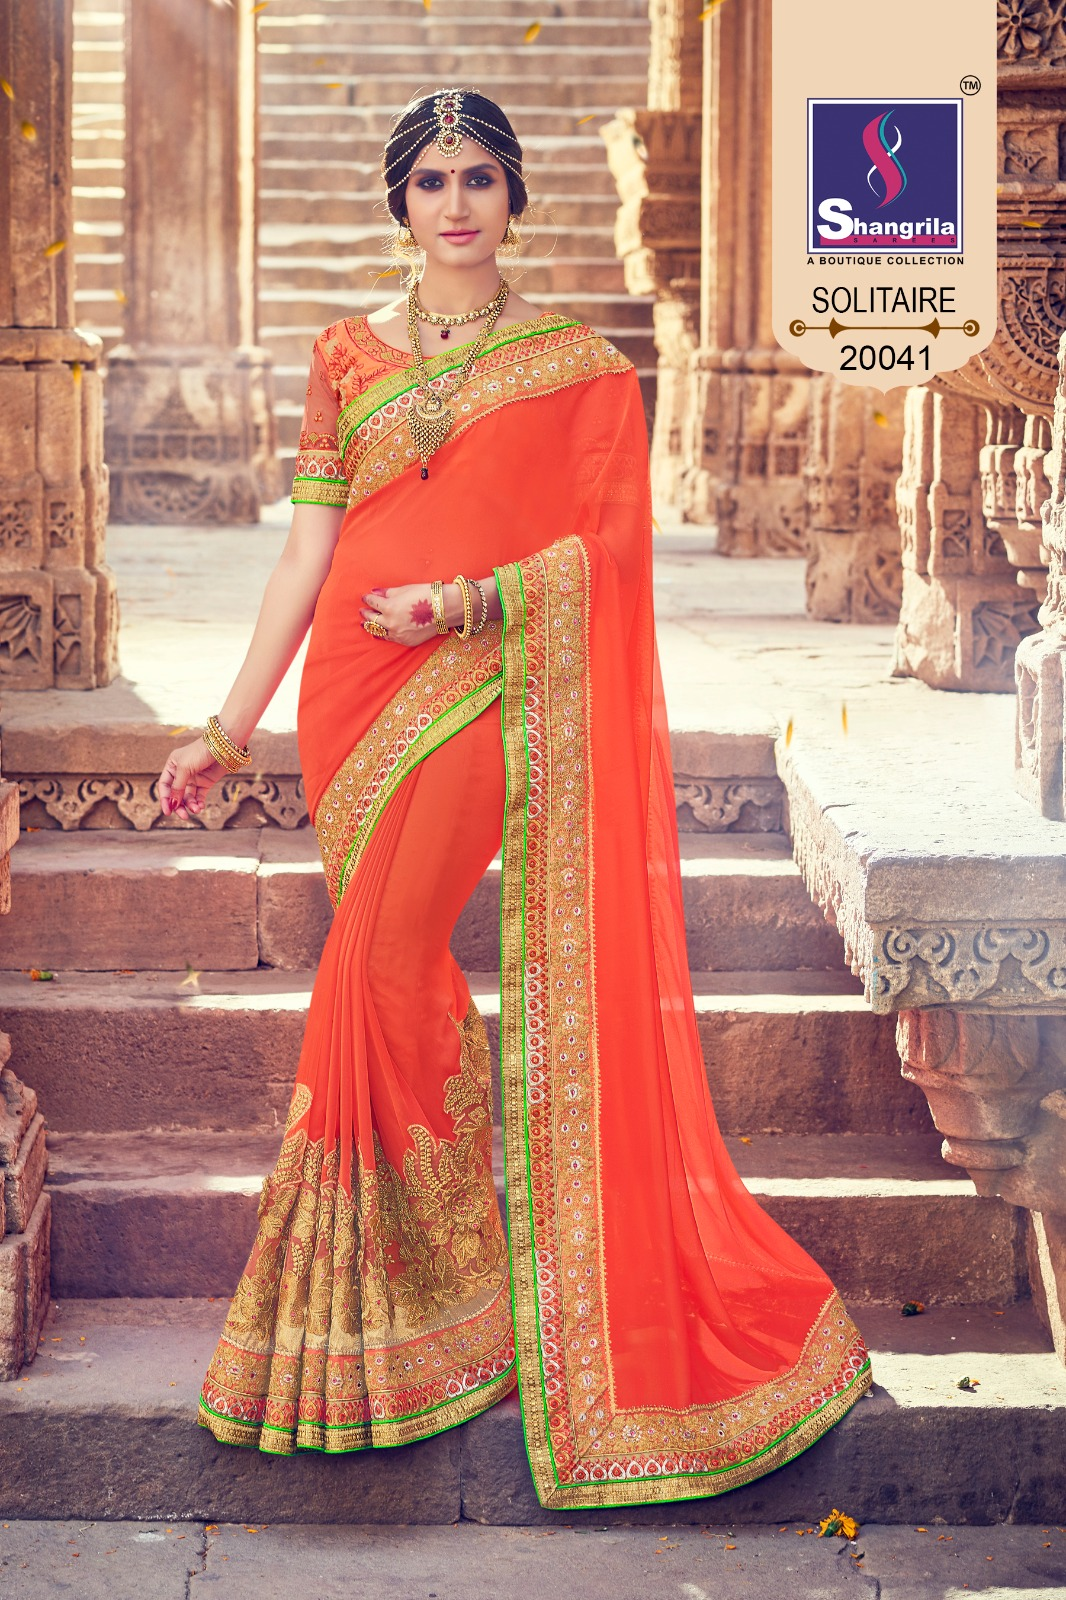 Solitare – Exclusive Wedding Collection With Embroidery Work And Elegant Saree